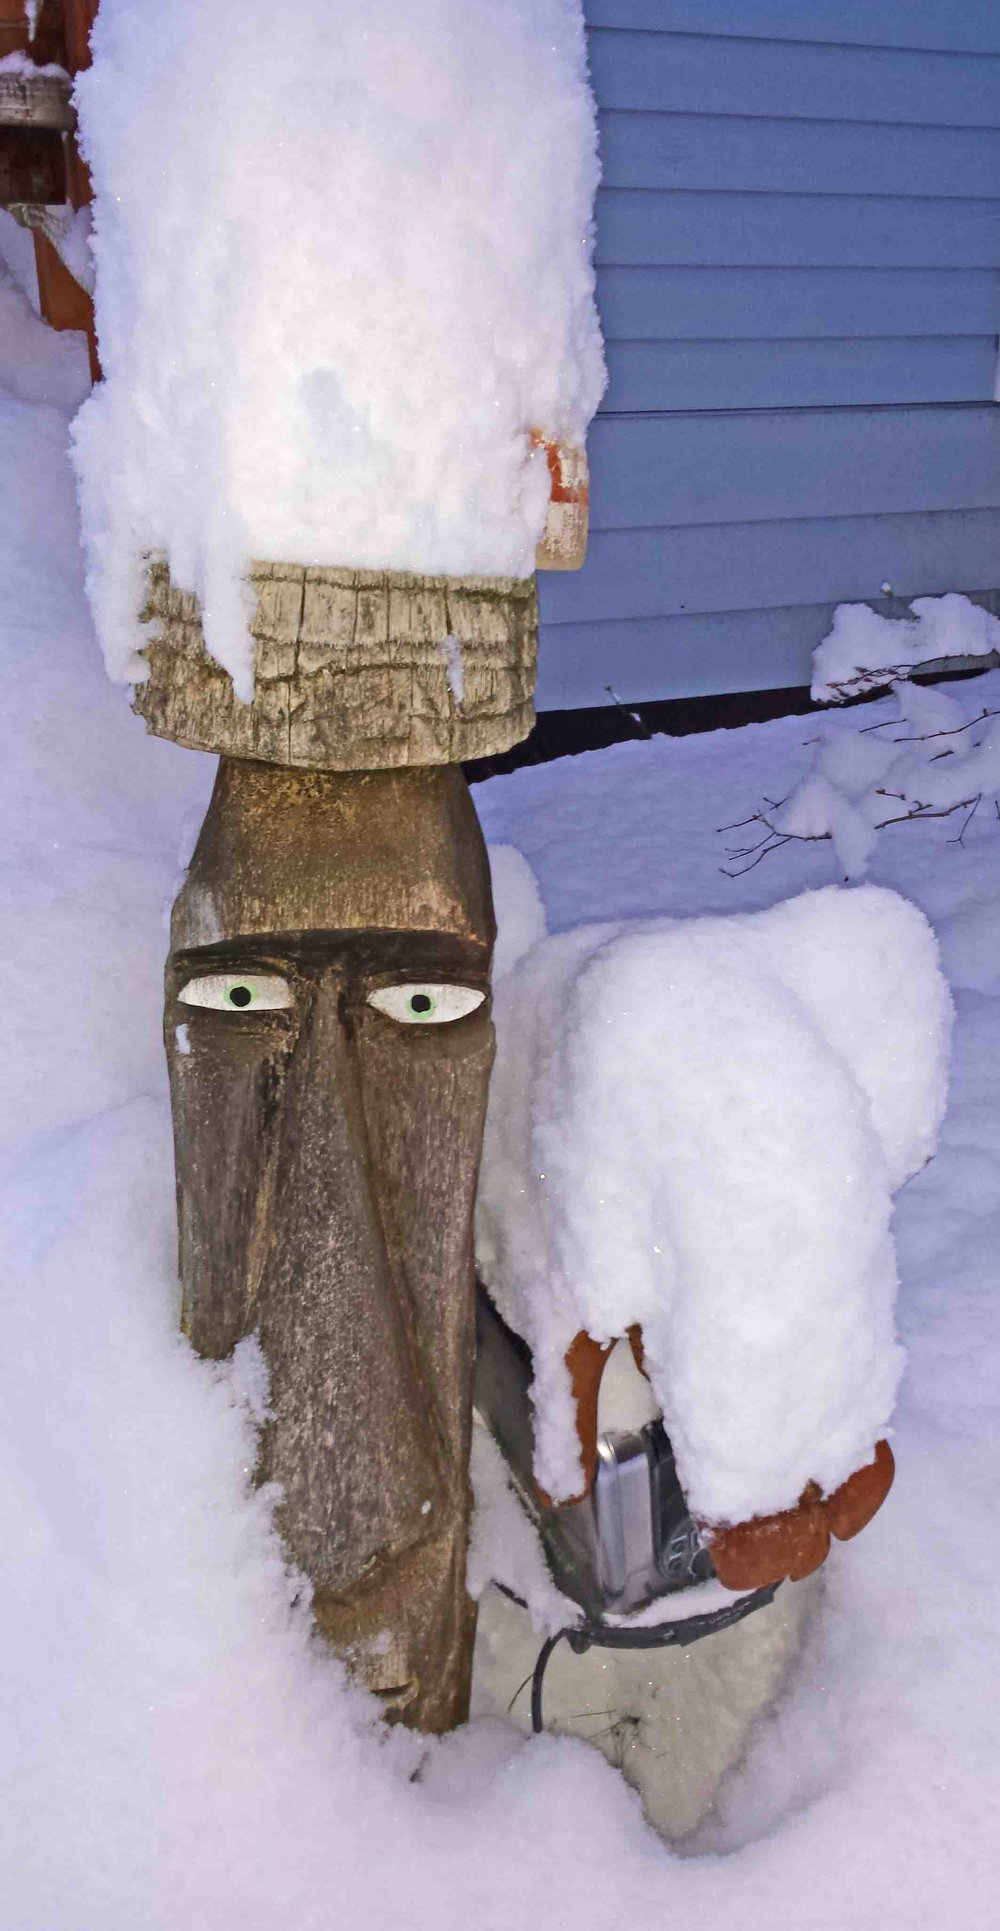 Tiki Dude and recycled toaster dog Rusty seemed a little glum.                        Photo: (c) Barb Ayers, DogDiary.org